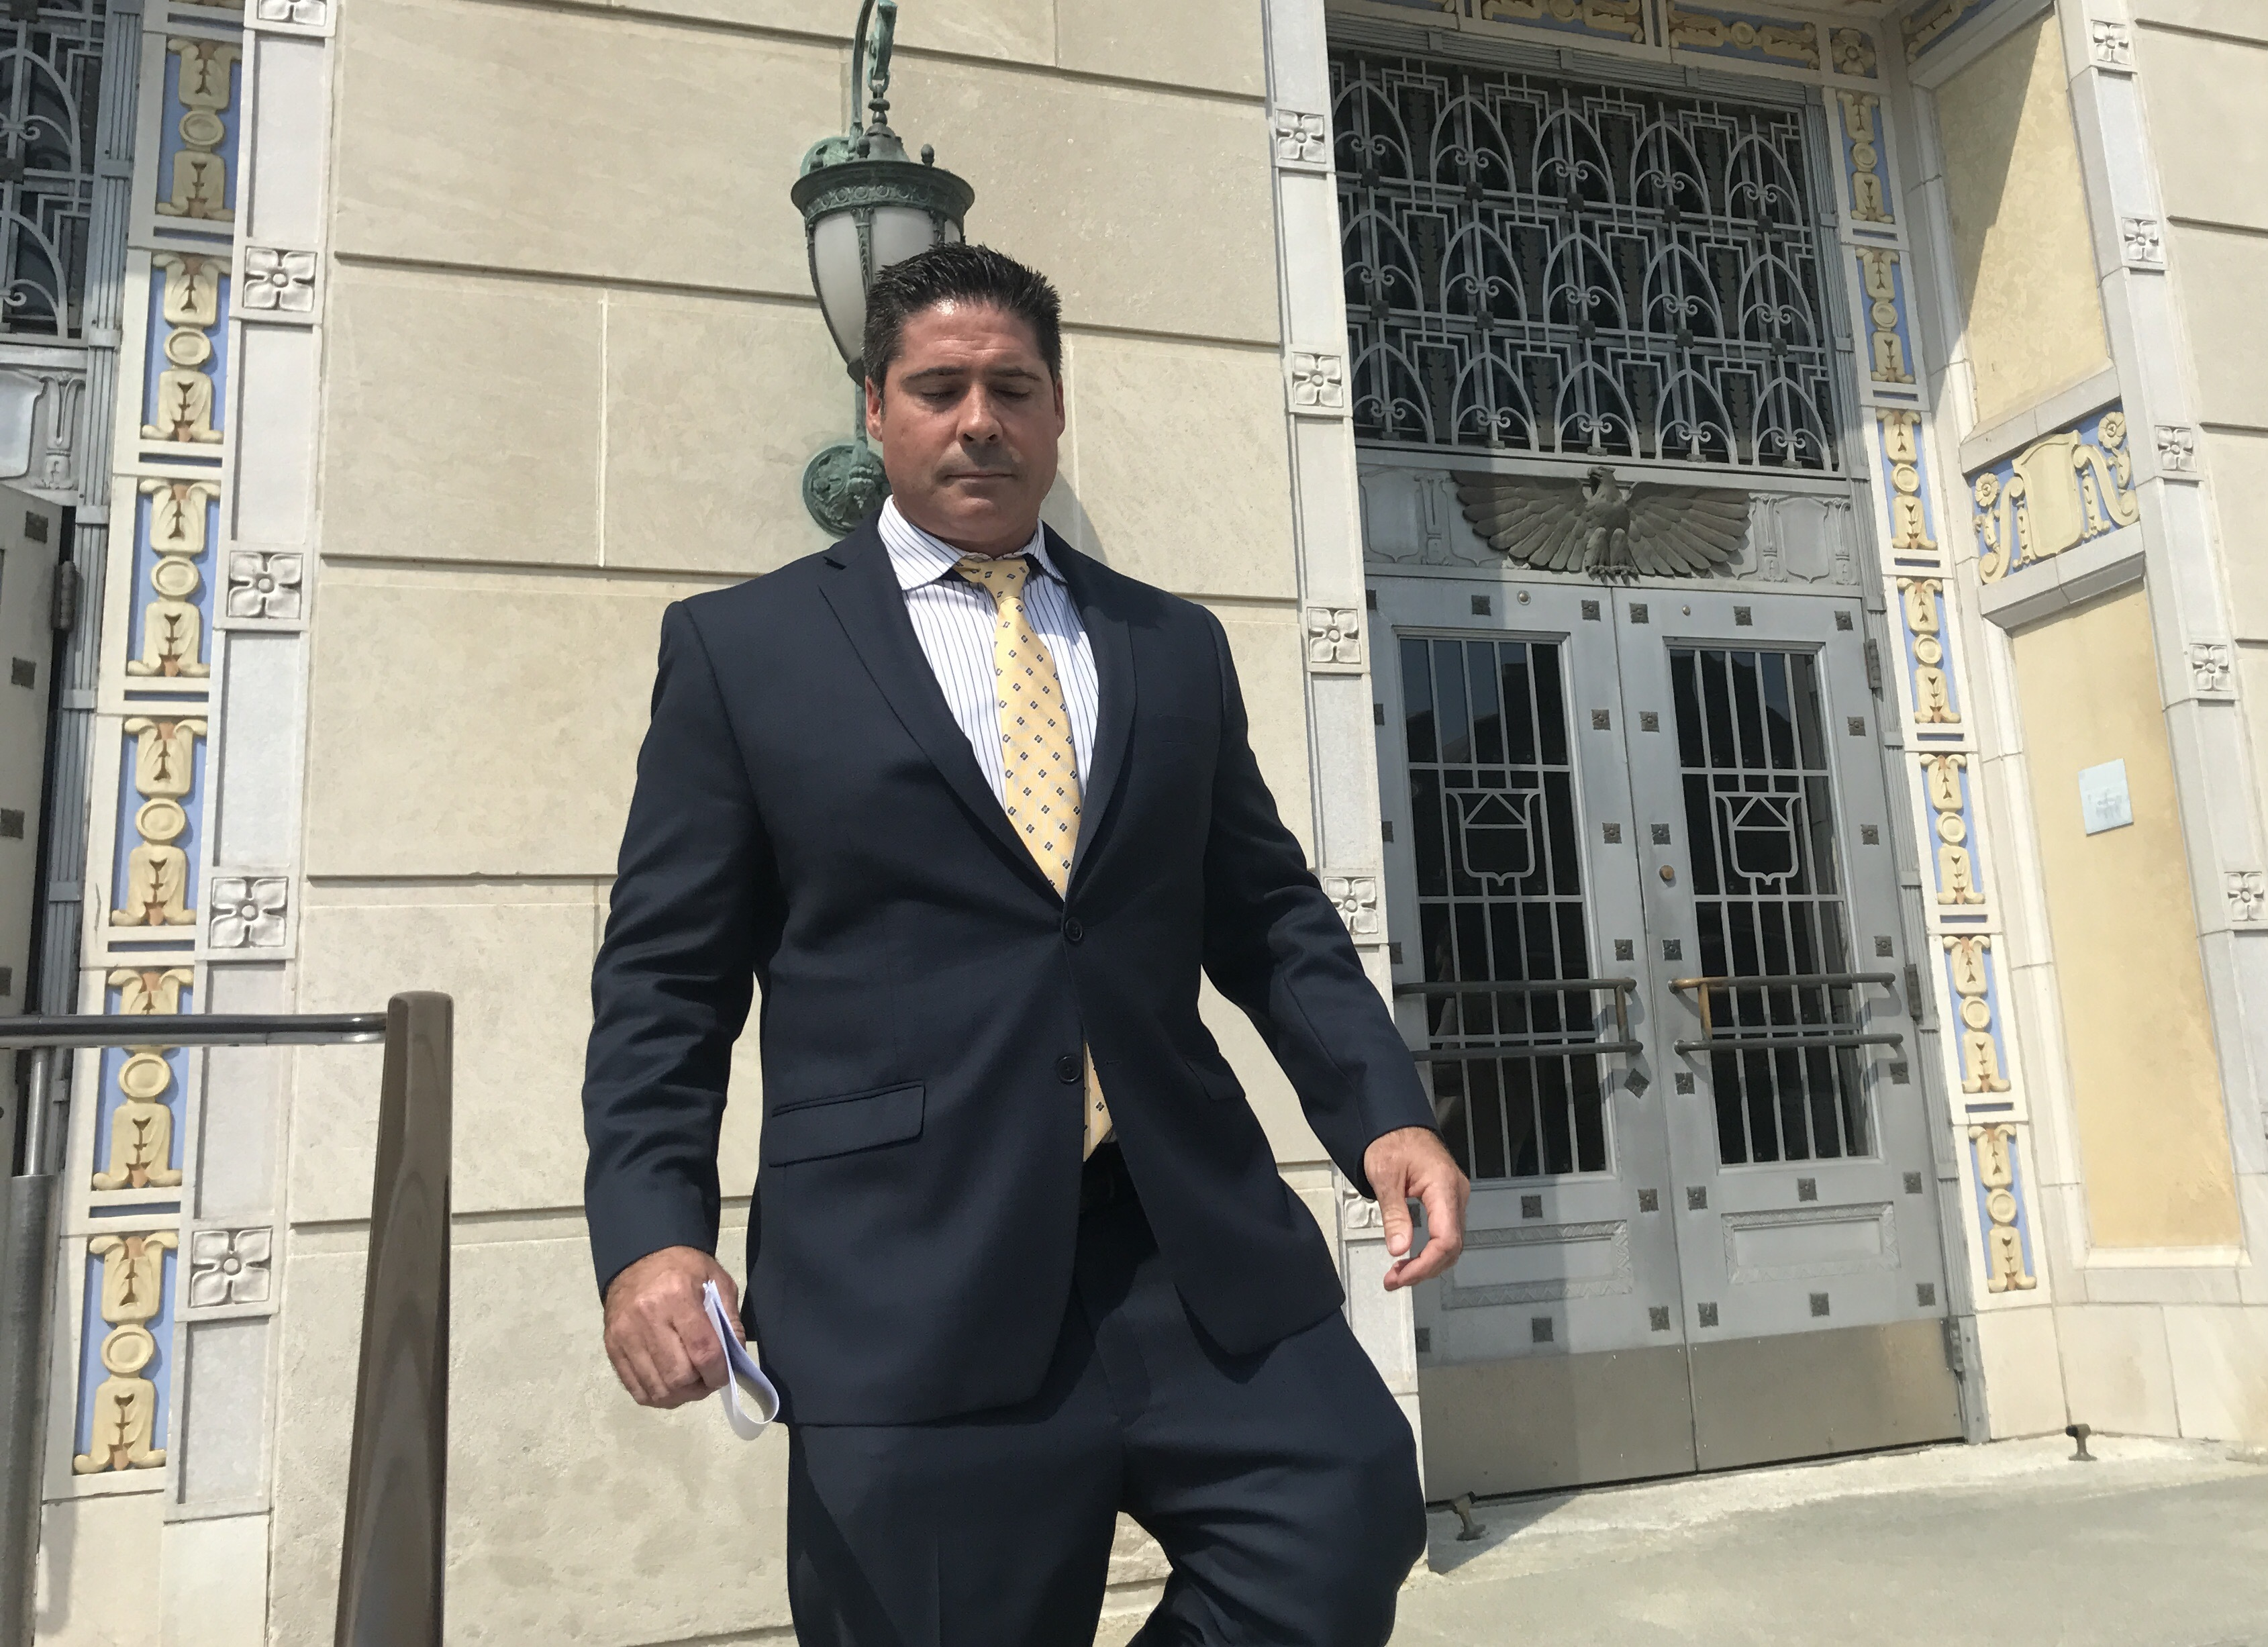 Matthew Tedesco, 42, of Linwood leaves the federal courthouse in Camden after pleading guilty in a $28 million prescription drug kickback scheme involving Shore firefighters, police officers, teachers and a state trooper.